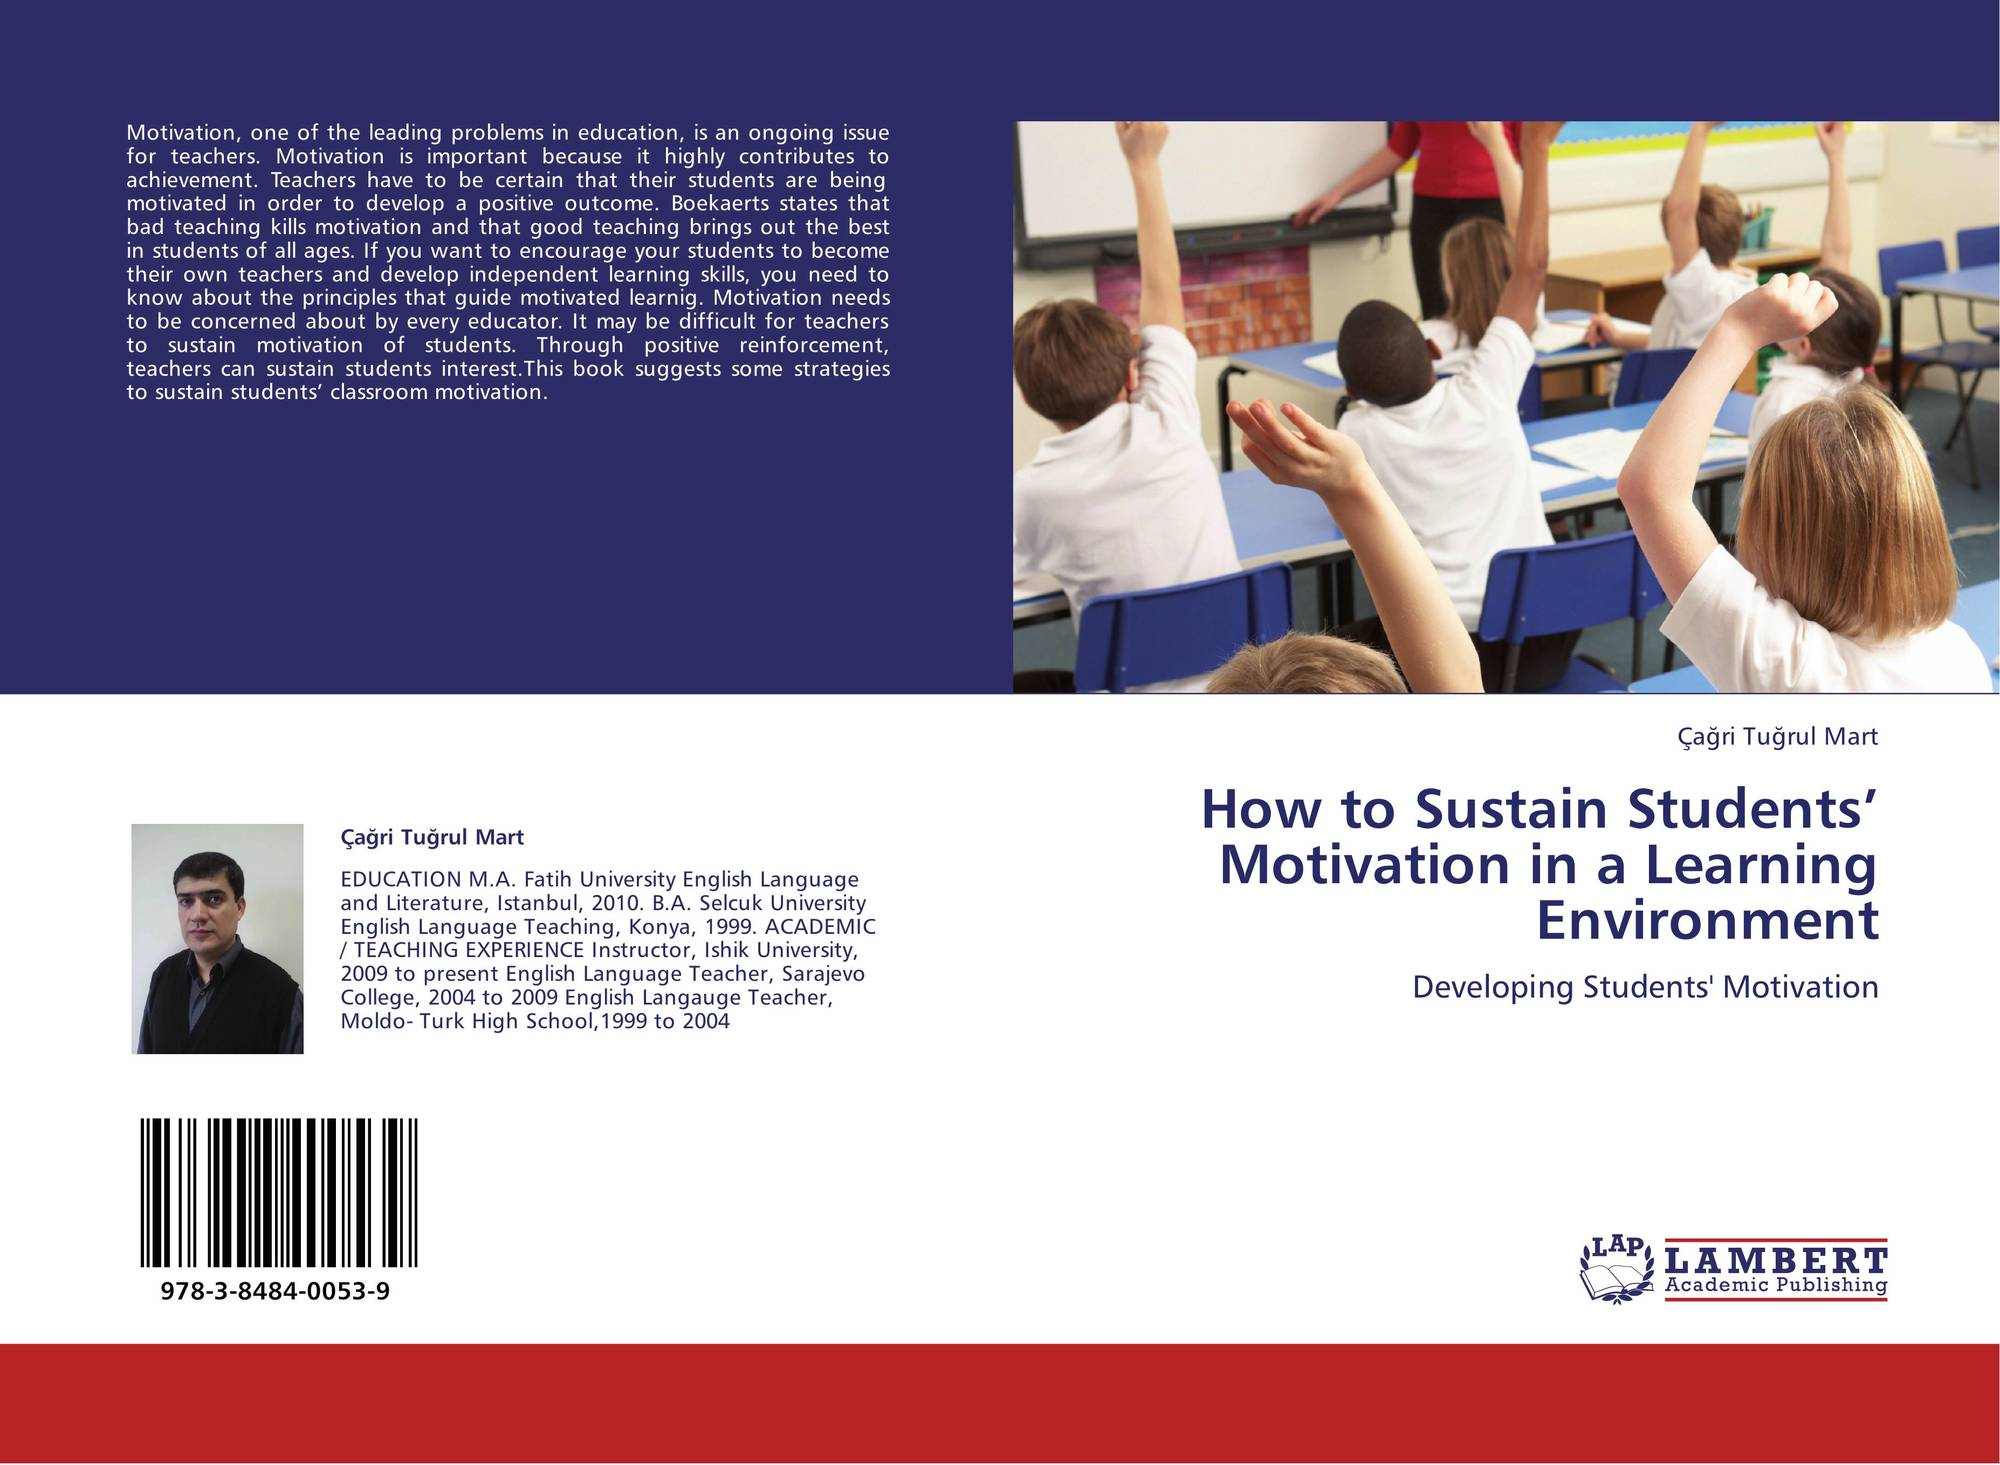 search results for motivation to become a doctor bookcover of how to sustain students motivation in a learning environment omni badge 9307e2201e5f762643a64561af3456be64a87707602f96b92ef18a9bbcada116